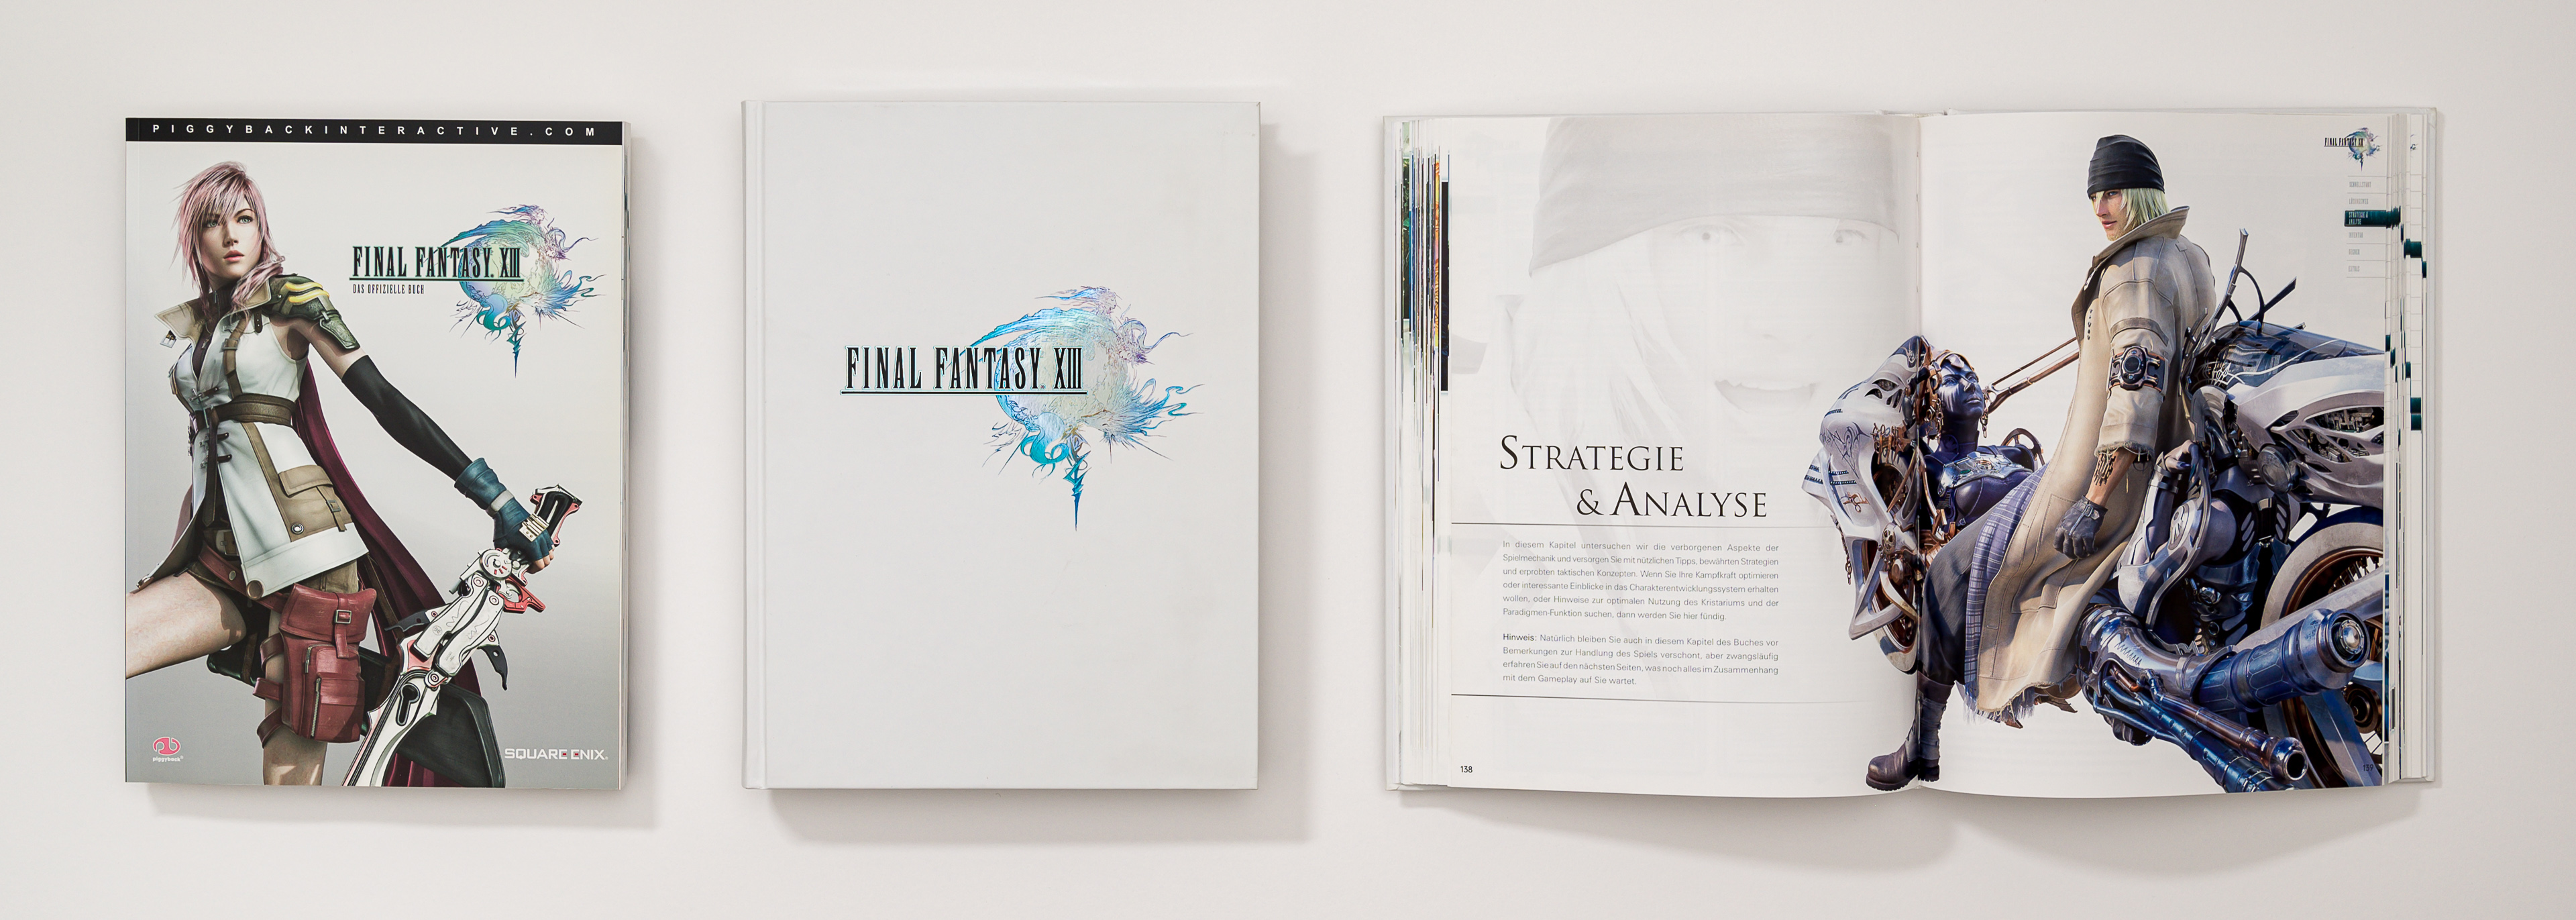 FFXIII_G_GUIDE-COLLAGE